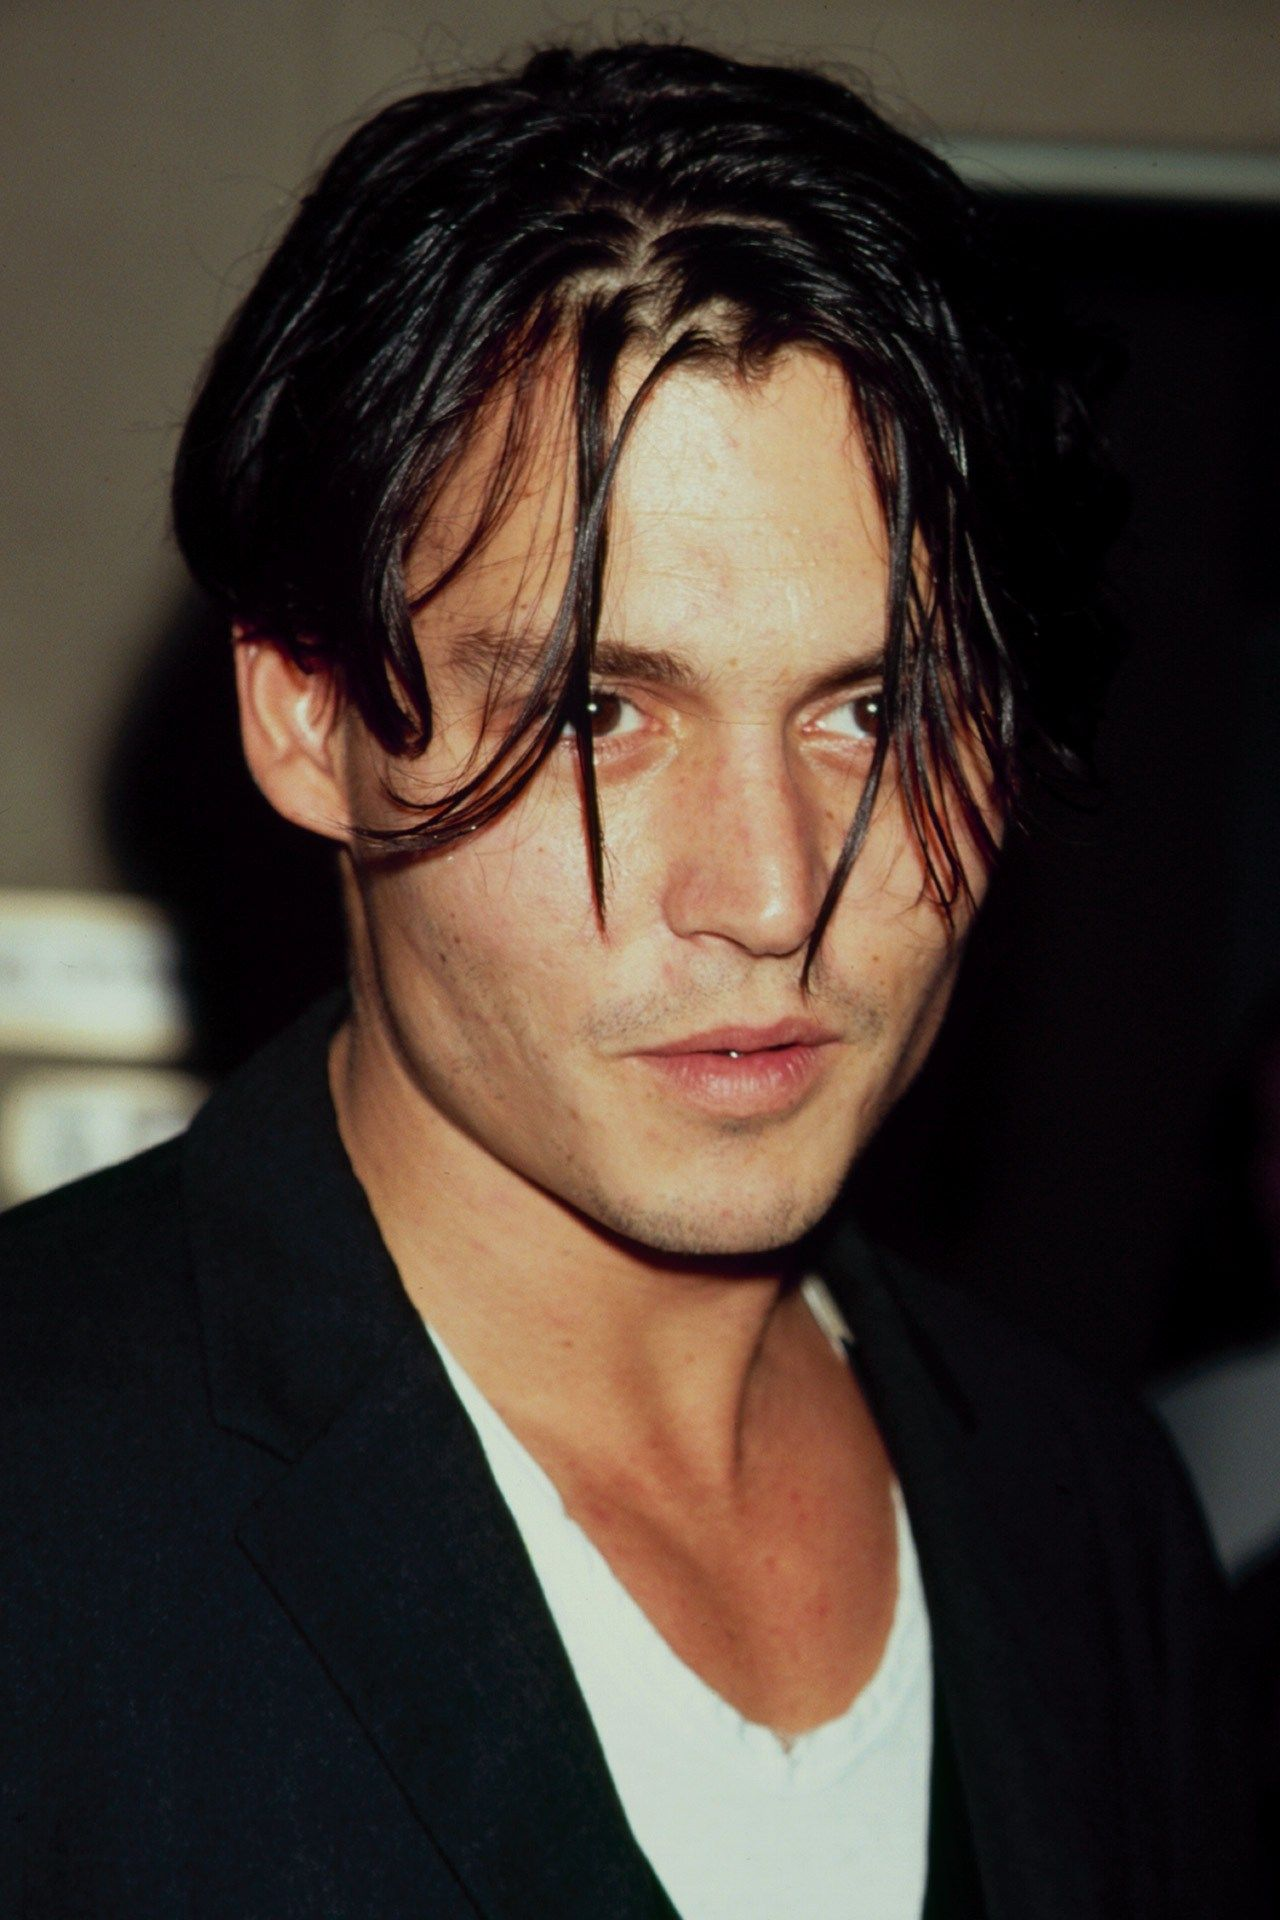 90s Curtains An Actual Men S Hair Trend We Miss 90s Hairstyles 90s Hair Men Mens Hairstyles